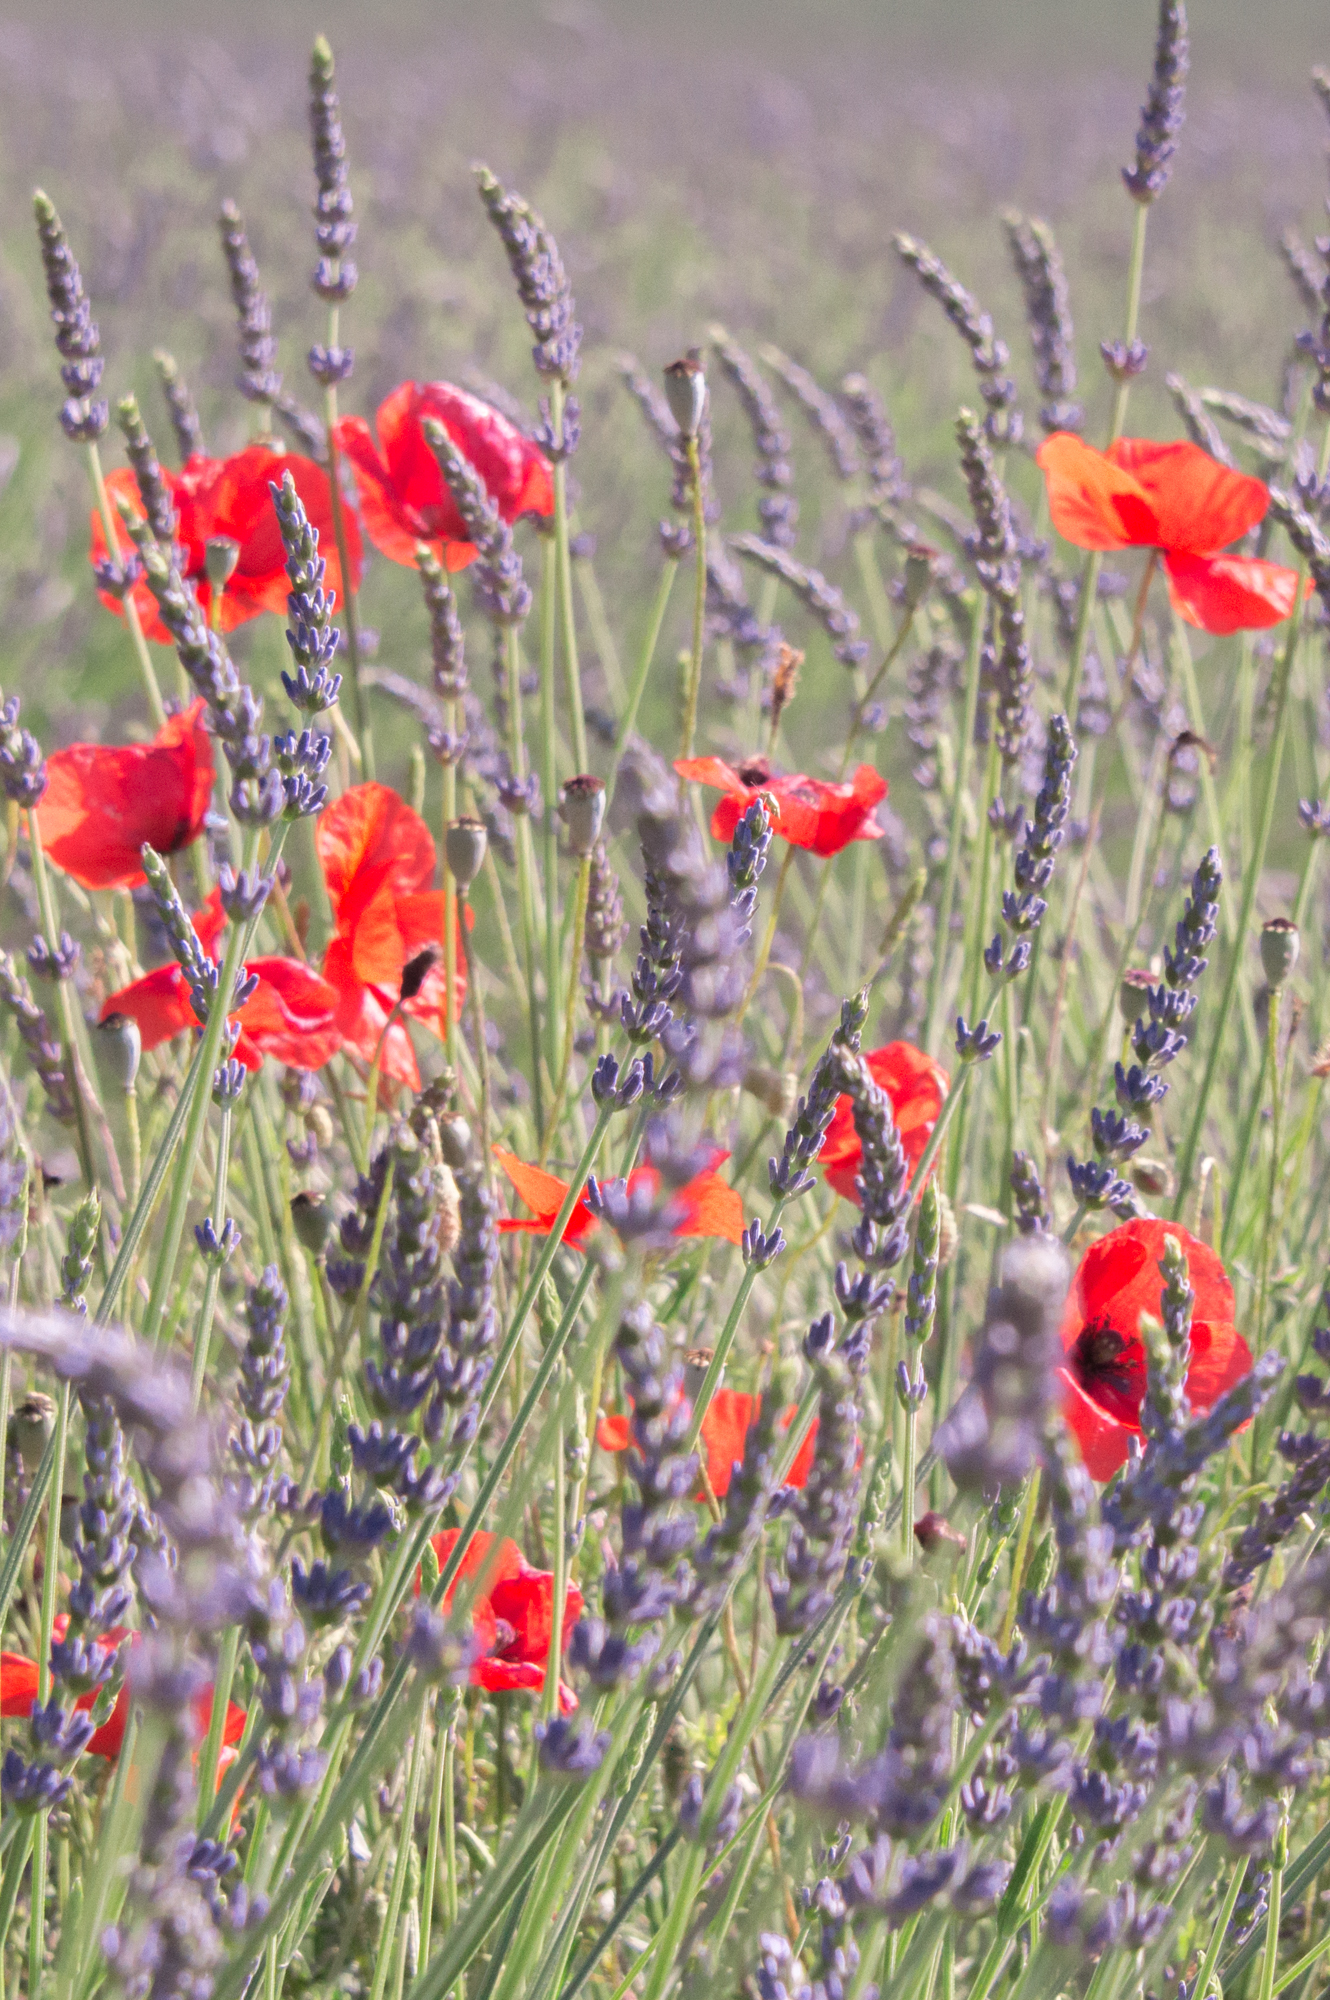 Lavender and Poppies in Provence